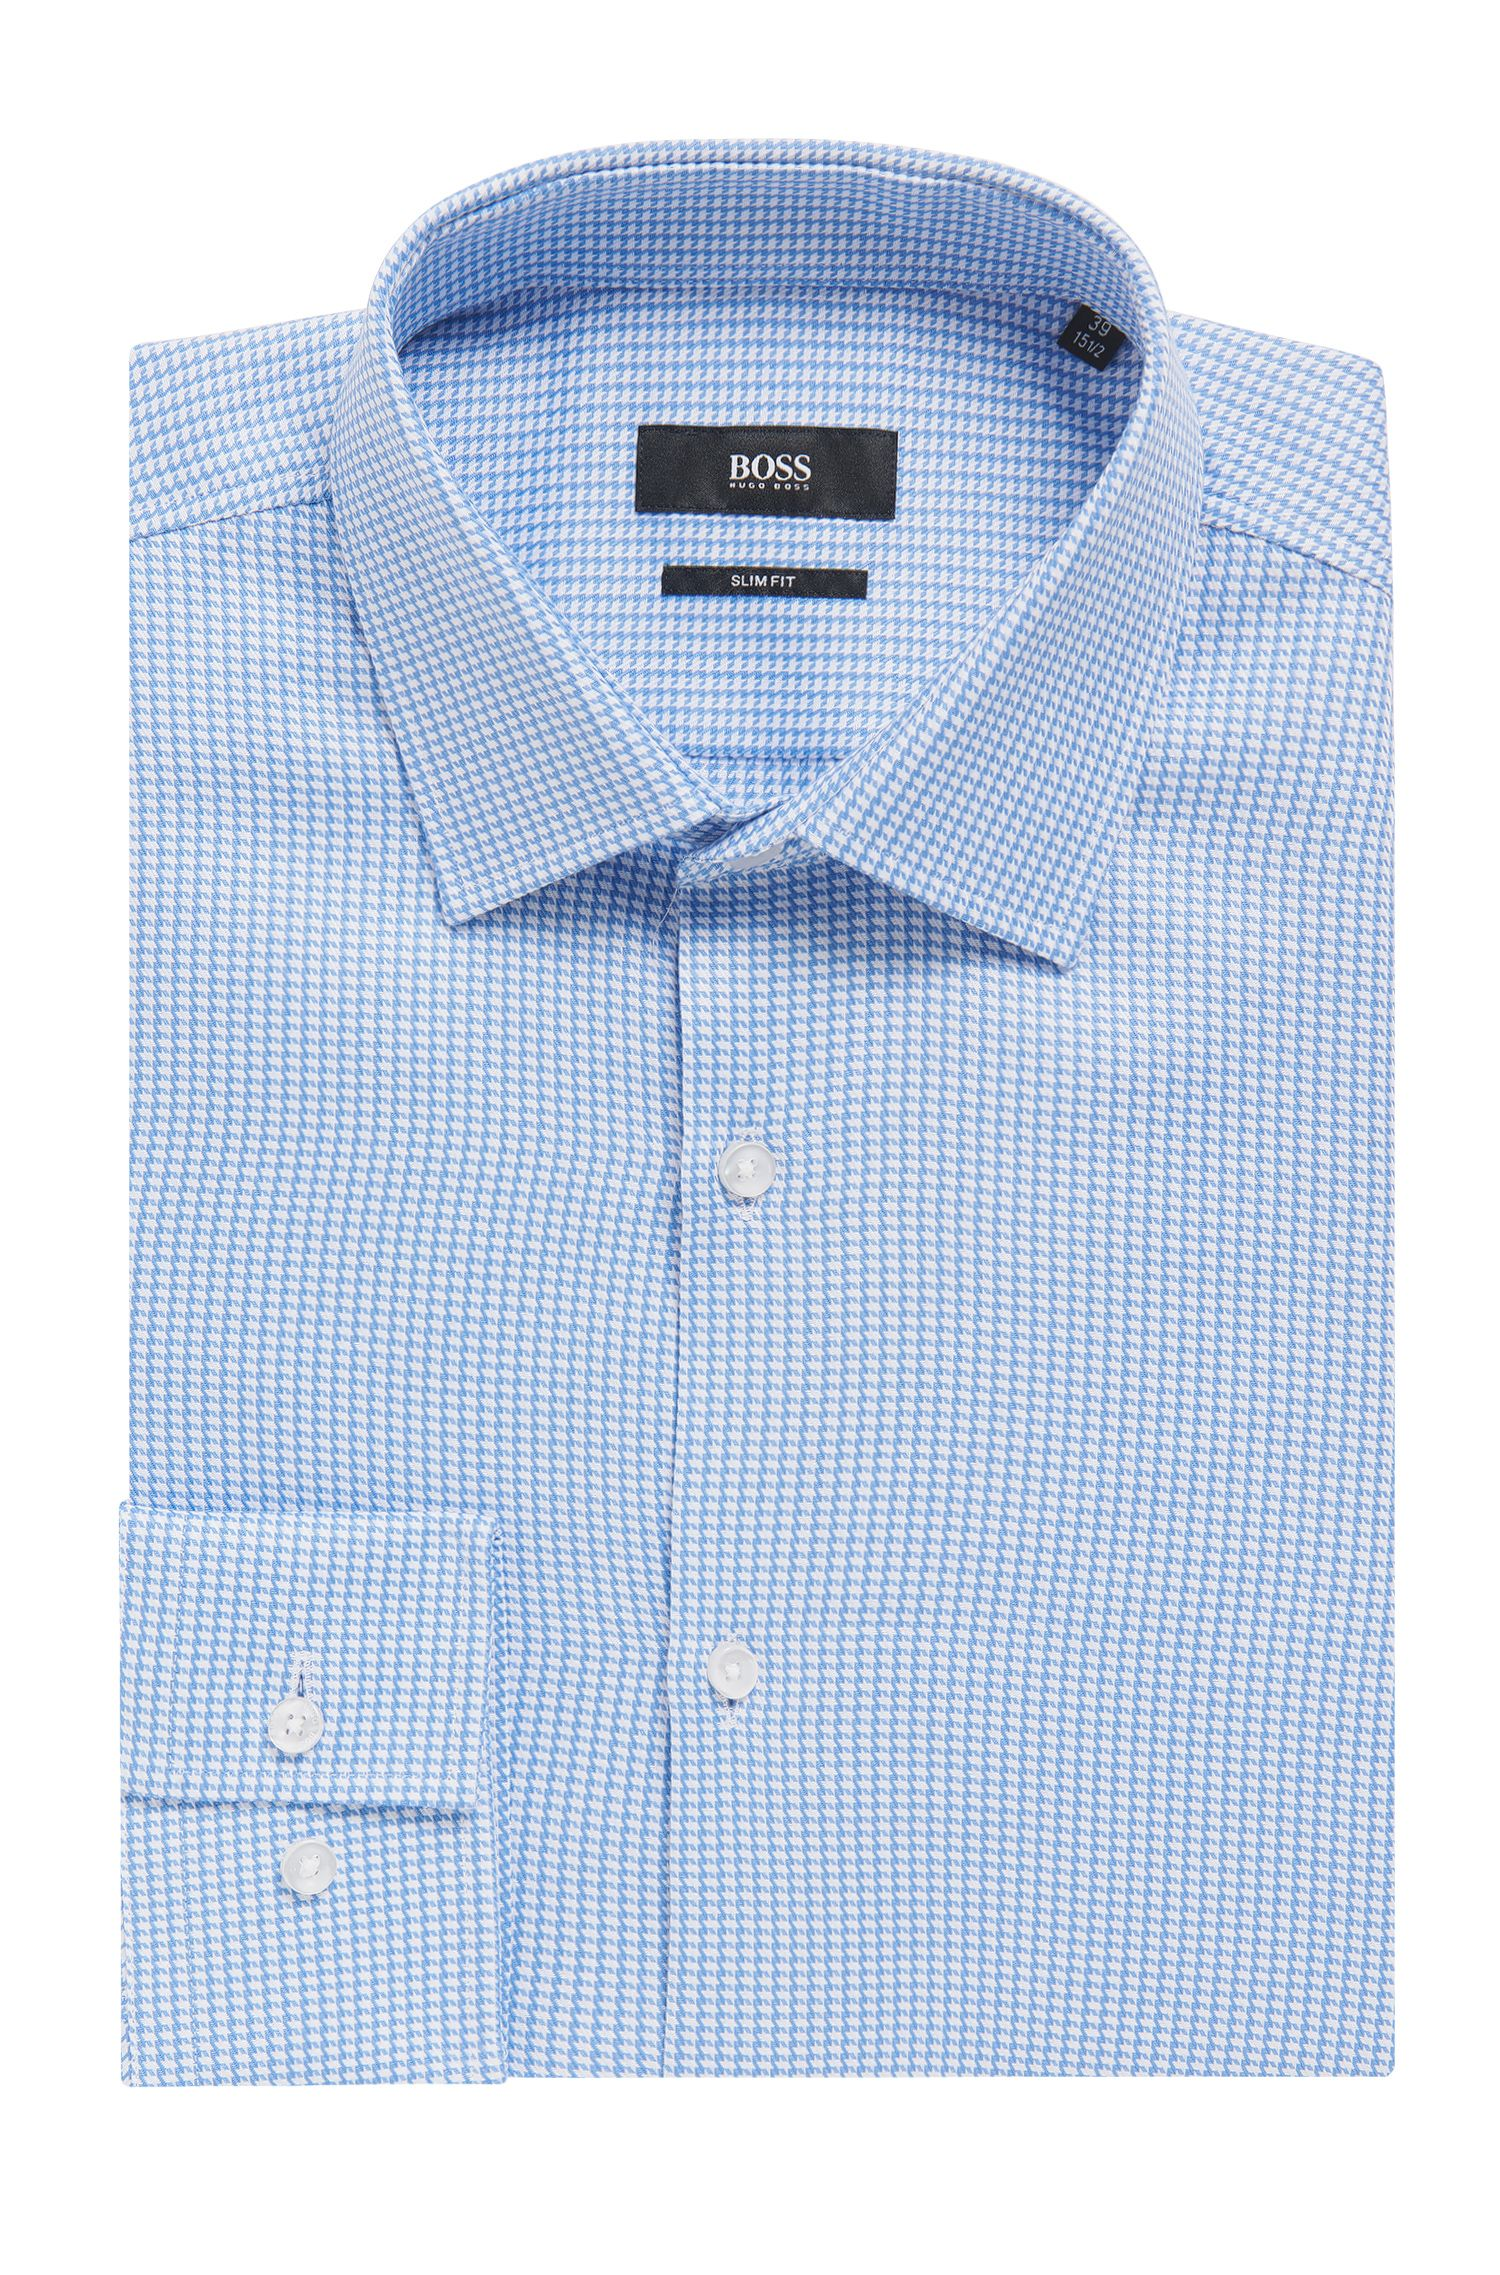 Italian Cotton Dress Shirt, Slim Fit | Jenno